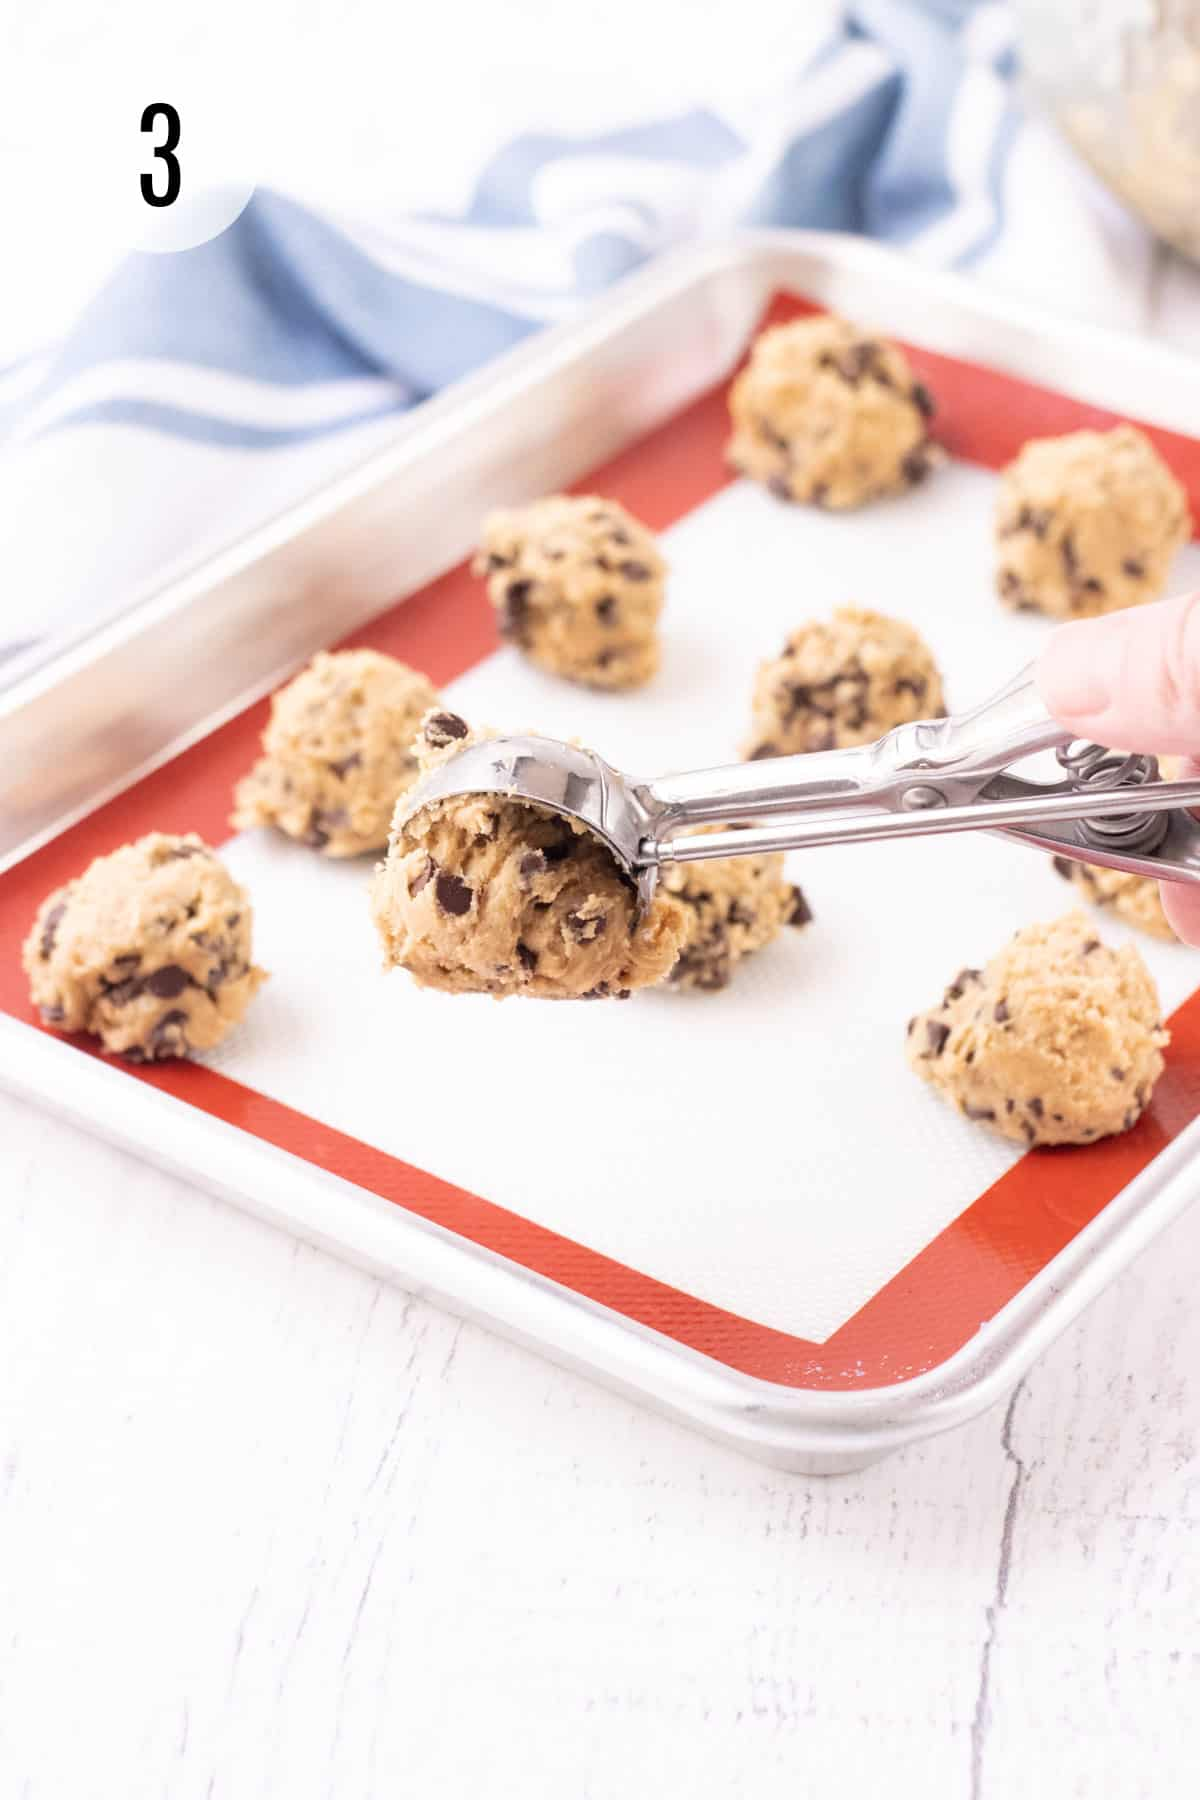 Cookie dough balls on a baking sheet lined with red and white silicone baking mat with silver scoop for dough with blue and white towel in background.